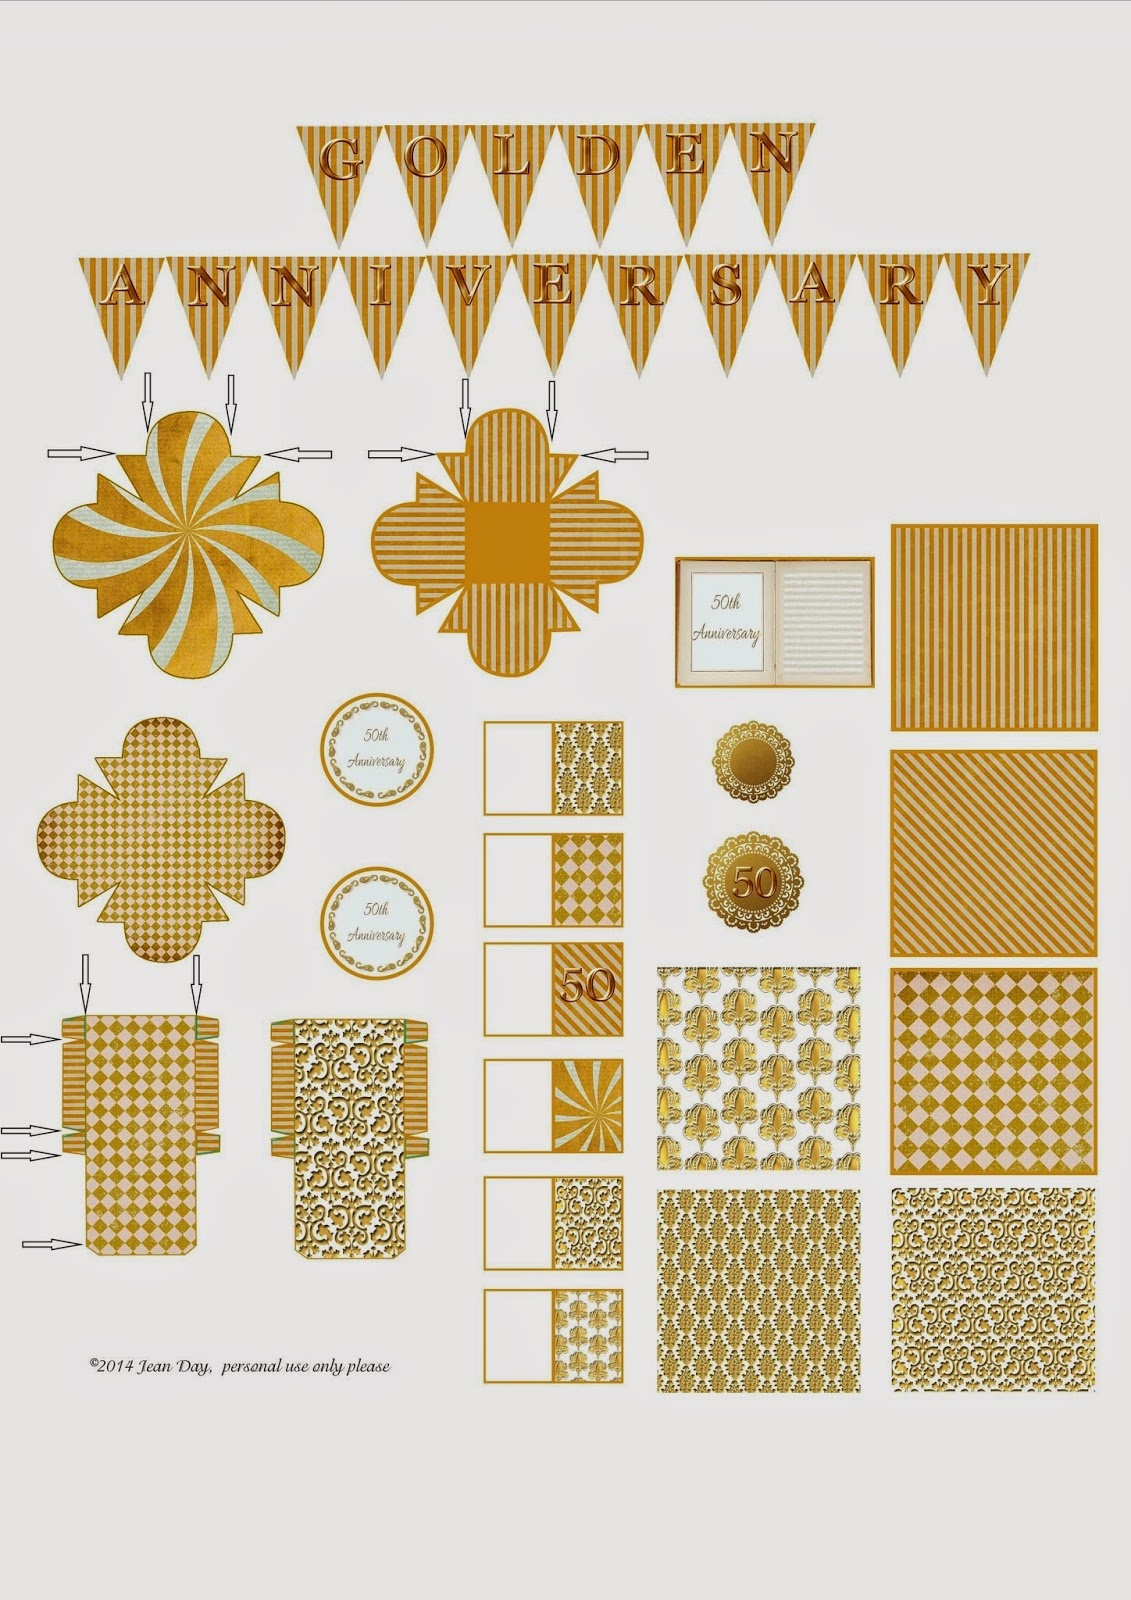 Jdayminis, 1:12 & 1:48 Scale Minis, Freebies & Inspiration: Free - Free 50Th Anniversary Printables